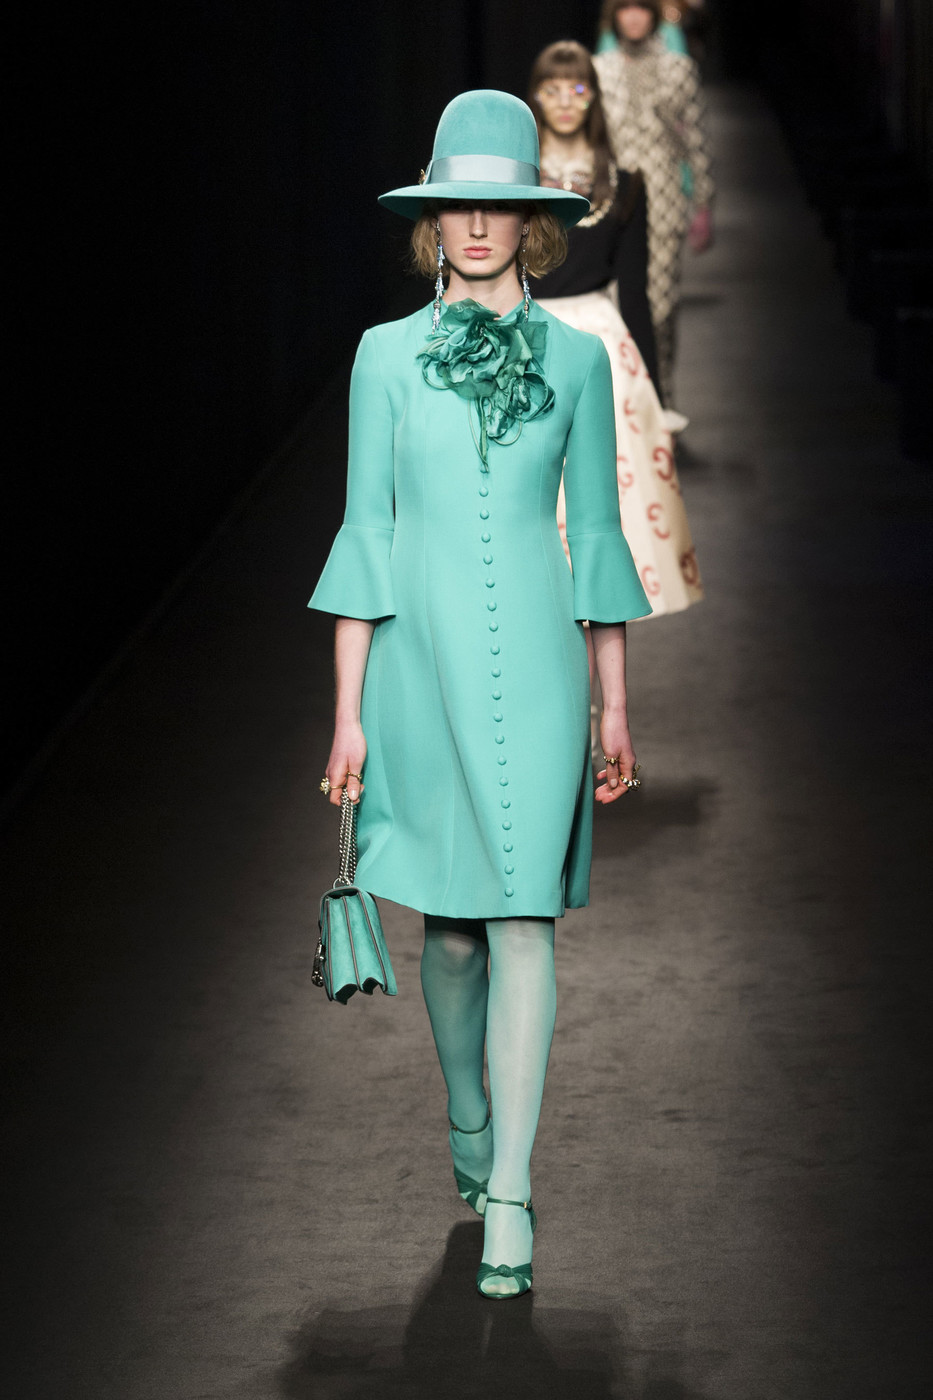 Gucci fall 2016 runway pictures livingly for Gucci milan fashion week